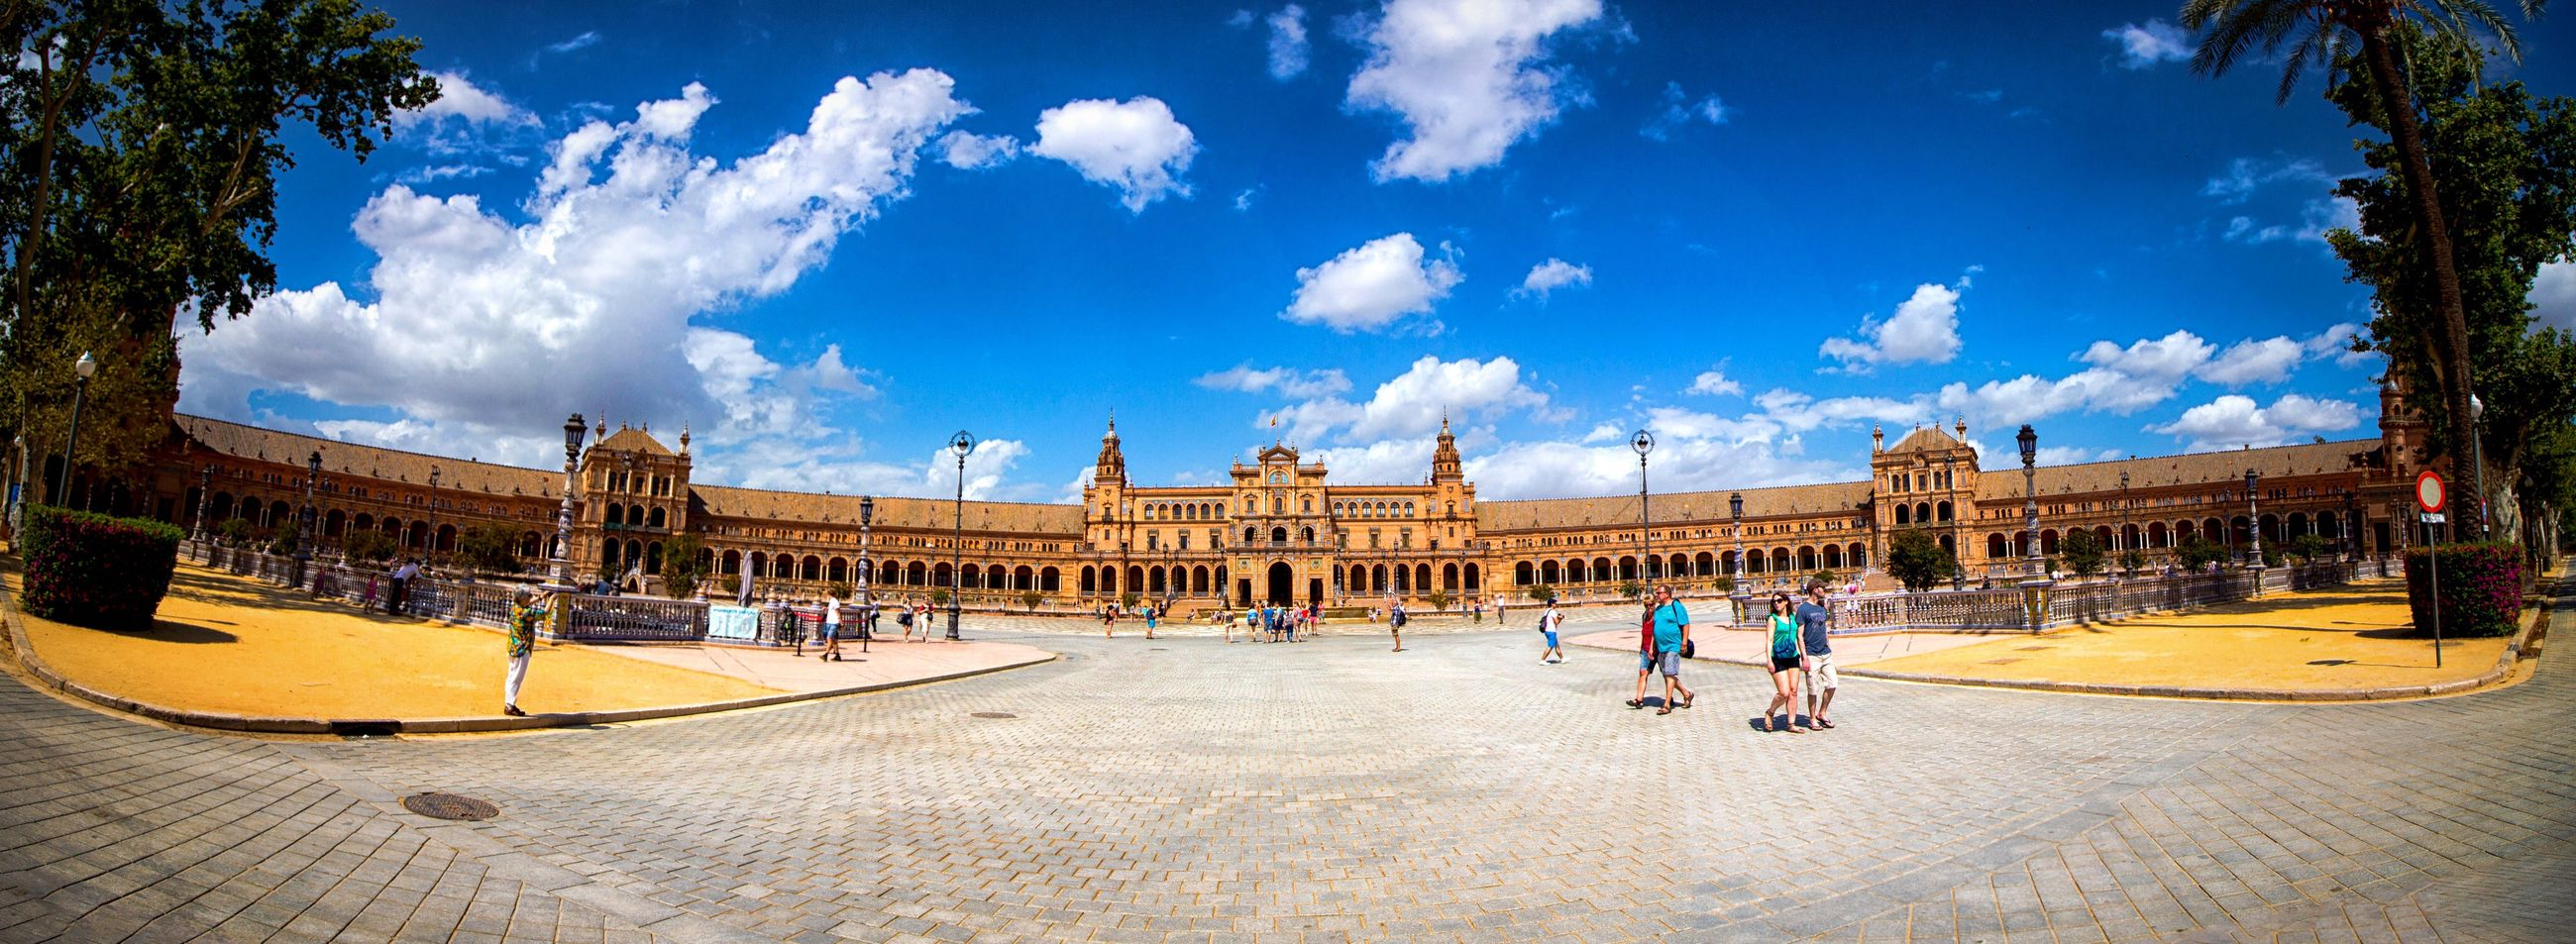 architecture, built structure, building exterior, tourism, travel destinations, famous place, travel, sky, tourist, history, international landmark, cloud - sky, capital cities, city, town square, palace, outdoors, vacations, blue, day, facade, city life, in front of, culture, government building, national landmark